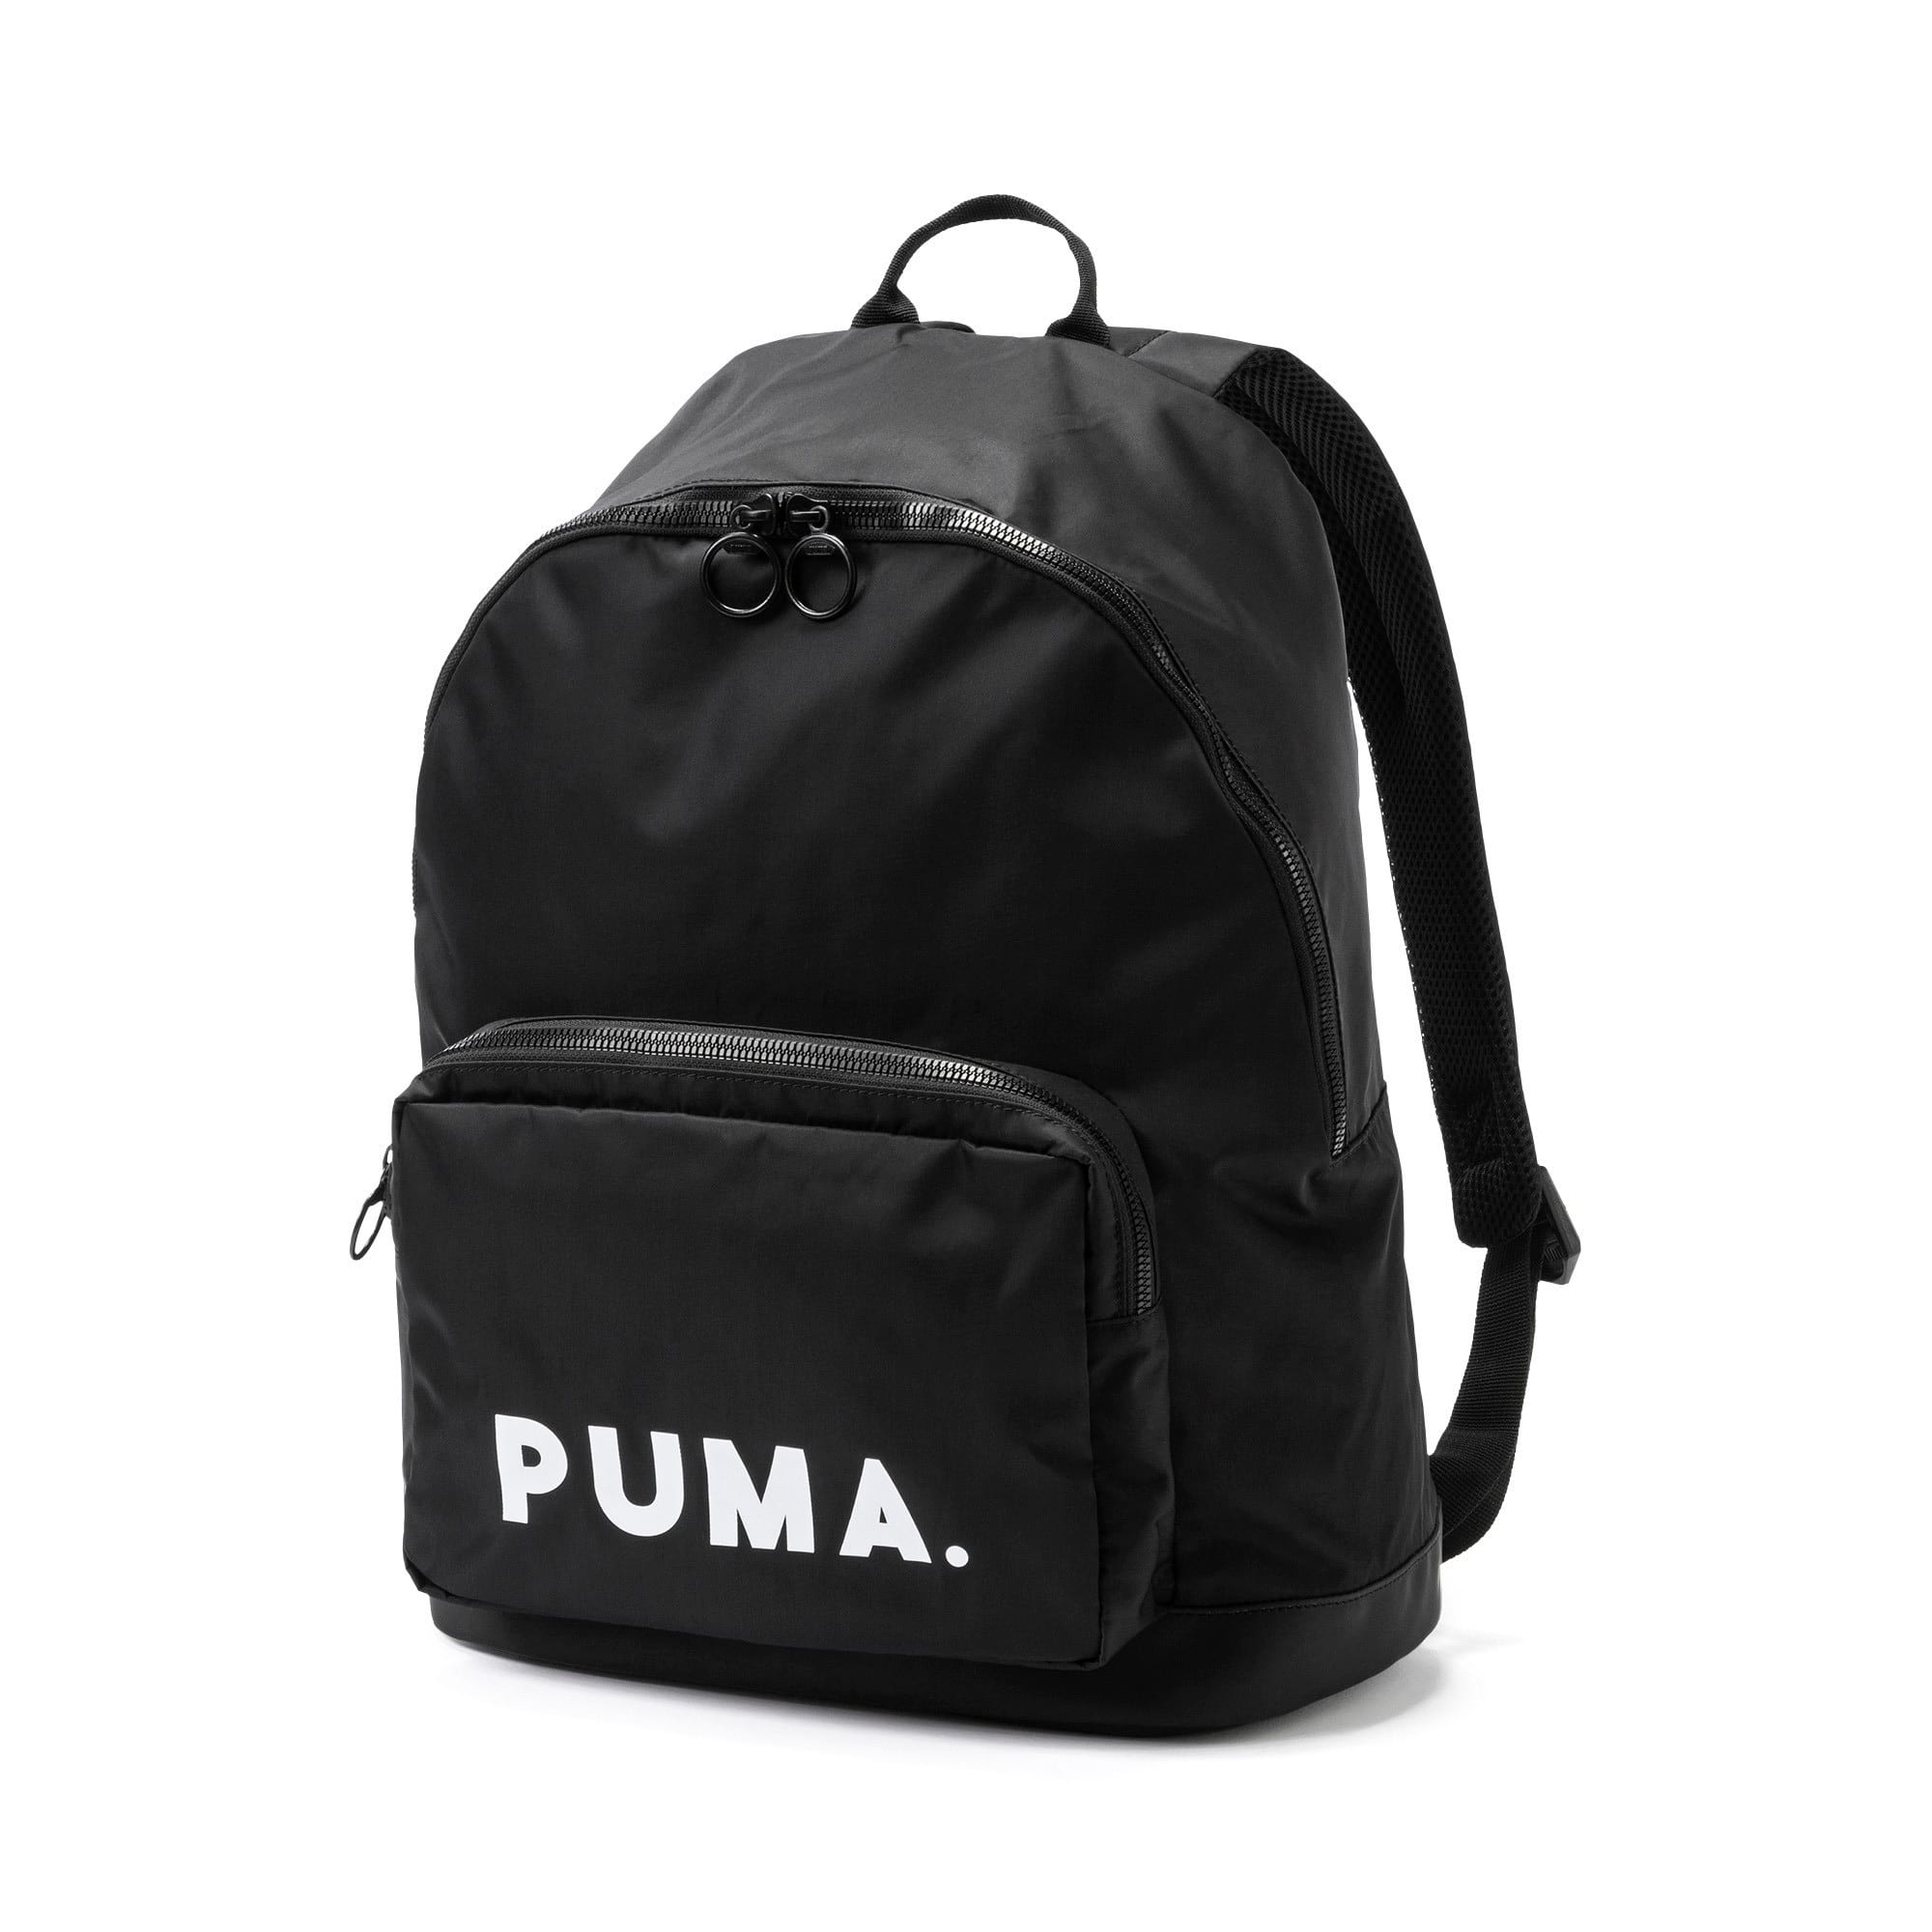 Thumbnail 1 of Originals Trend Backpack, Puma Black, medium